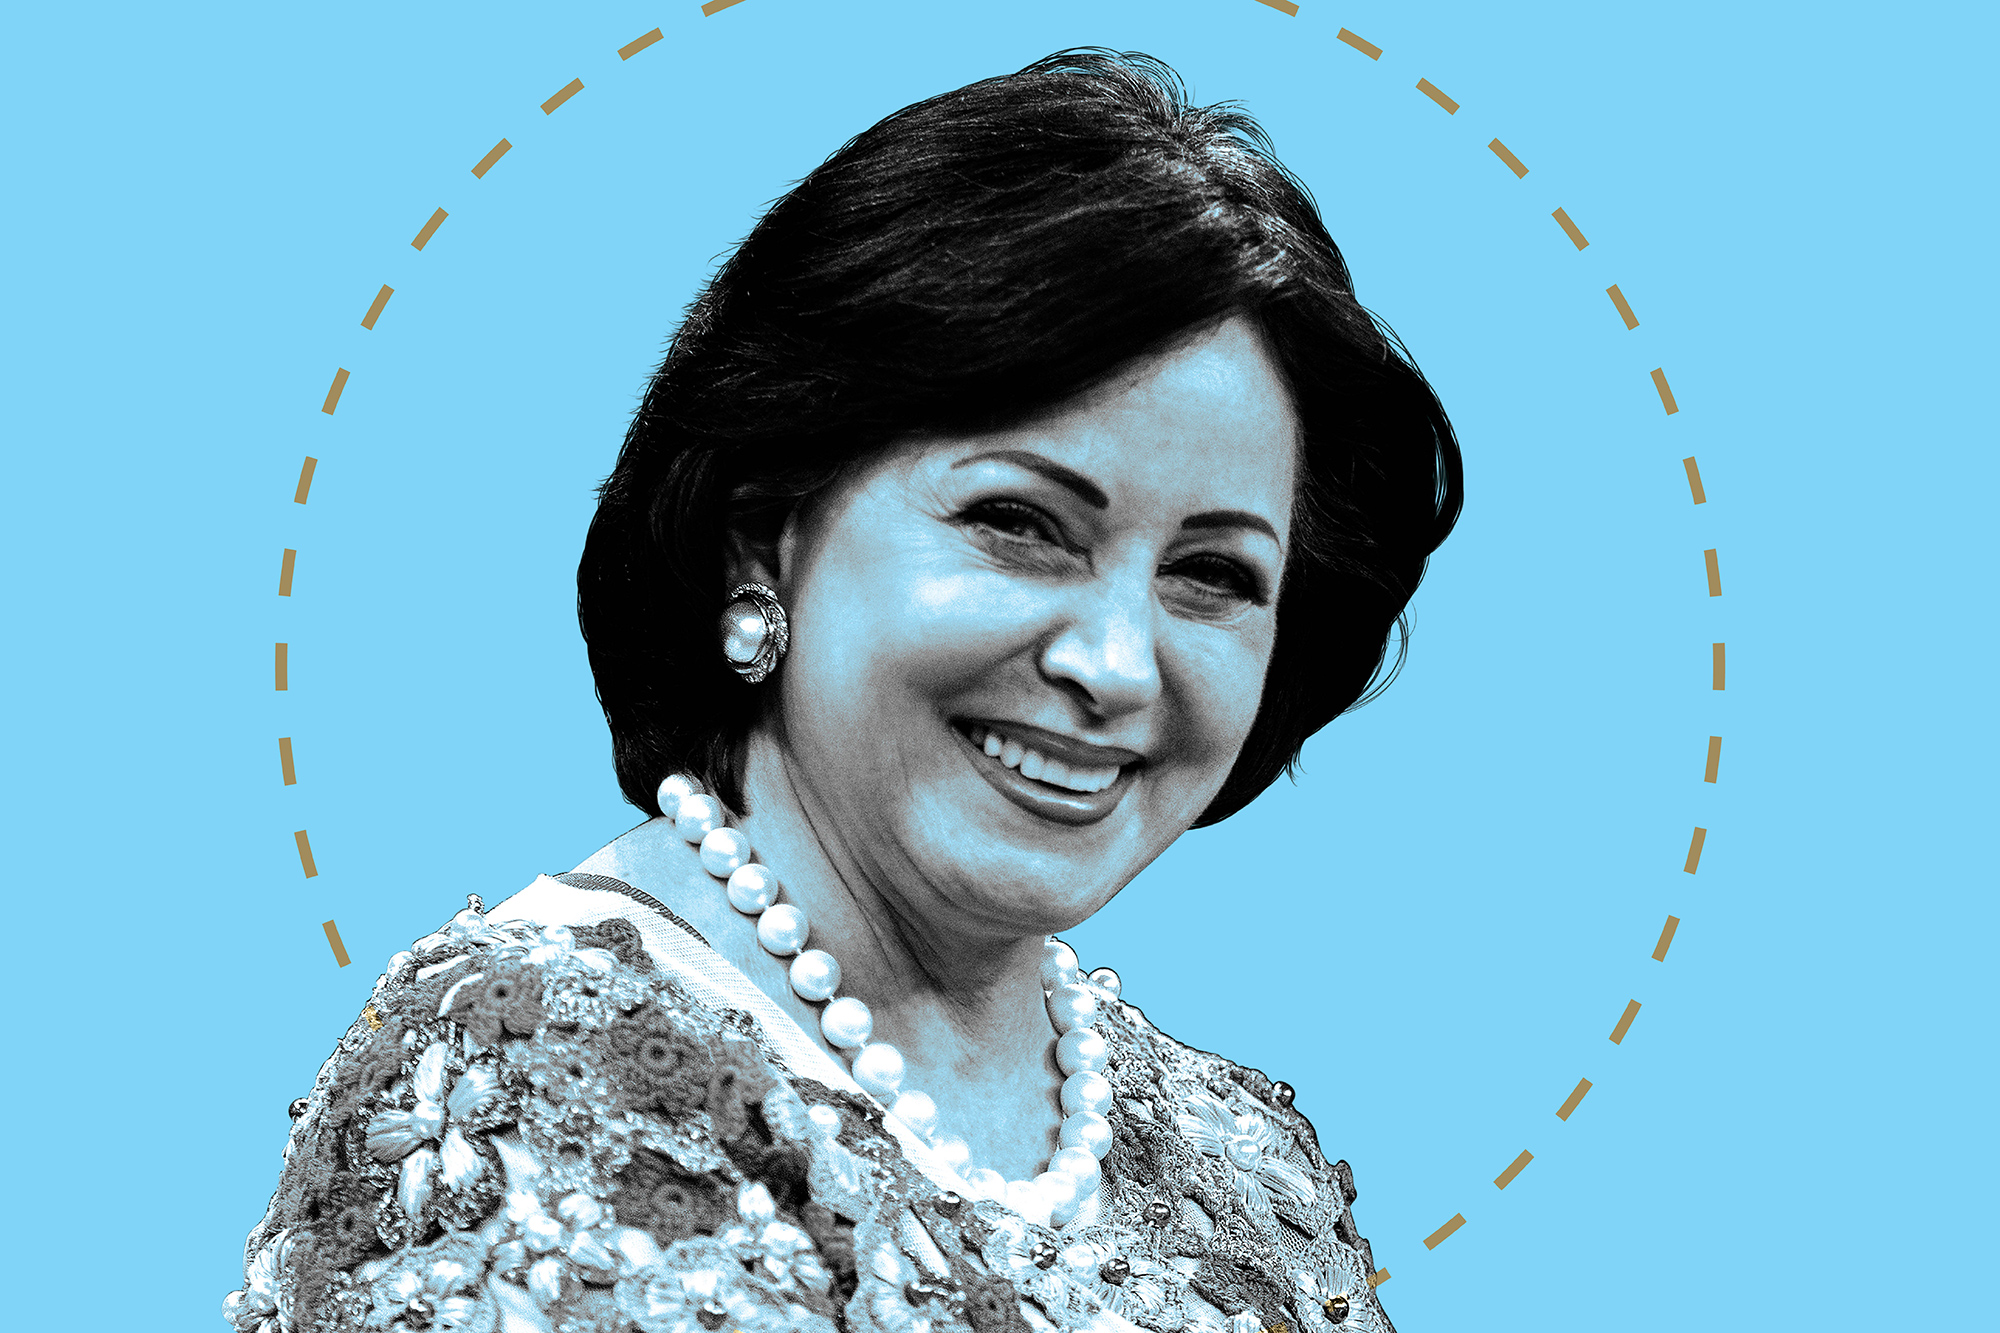 New Orleans Saints Owner: Gayle Benson net worth, political donations